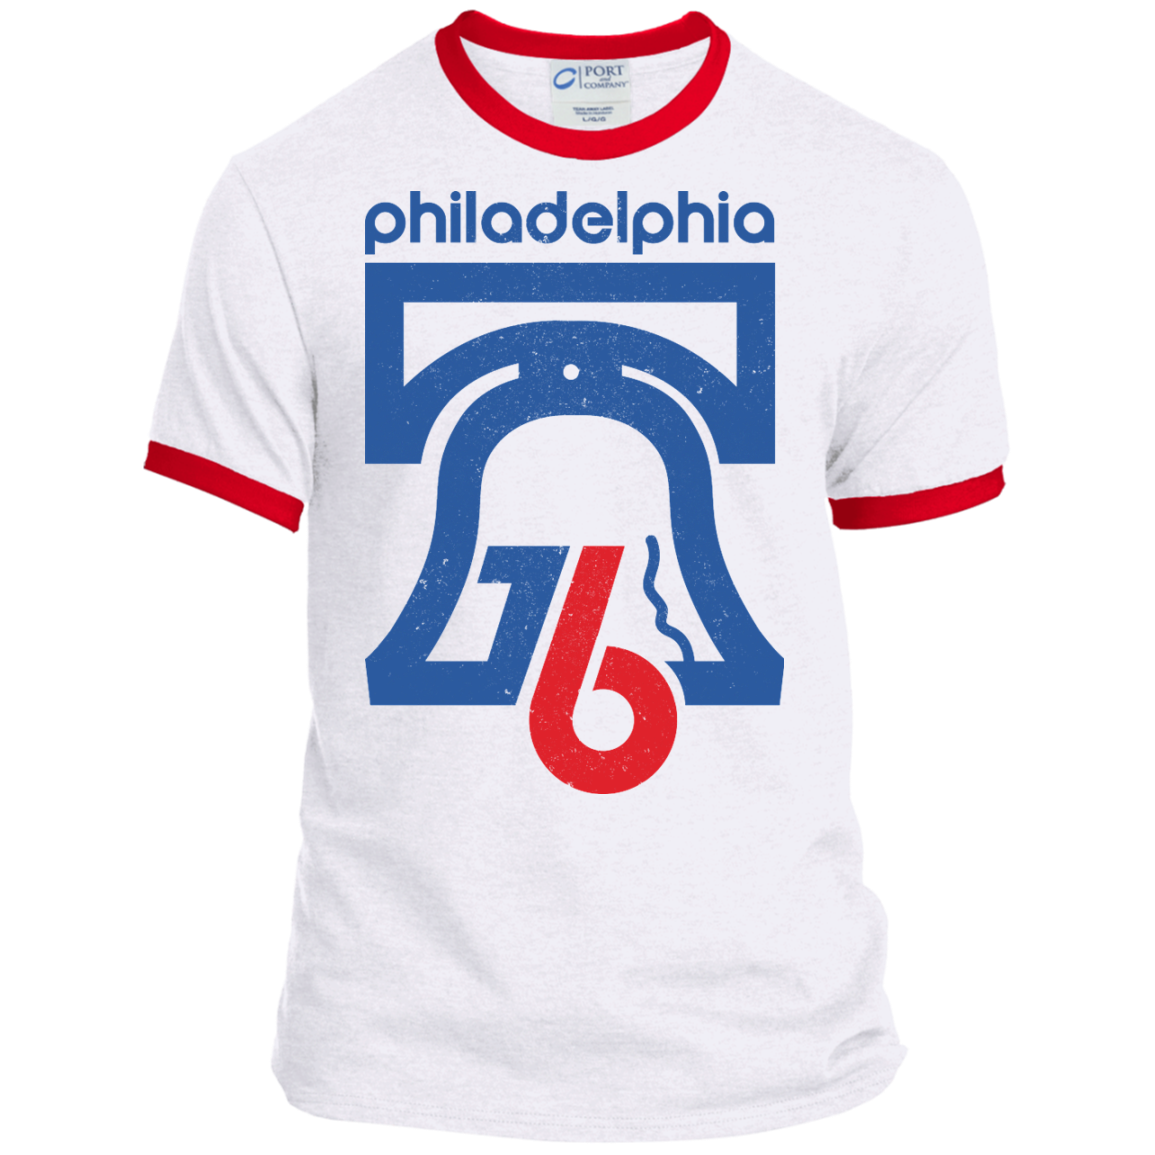 7bdb1c9a4273 Philly 76 Adult Ringer Tee - Generation T